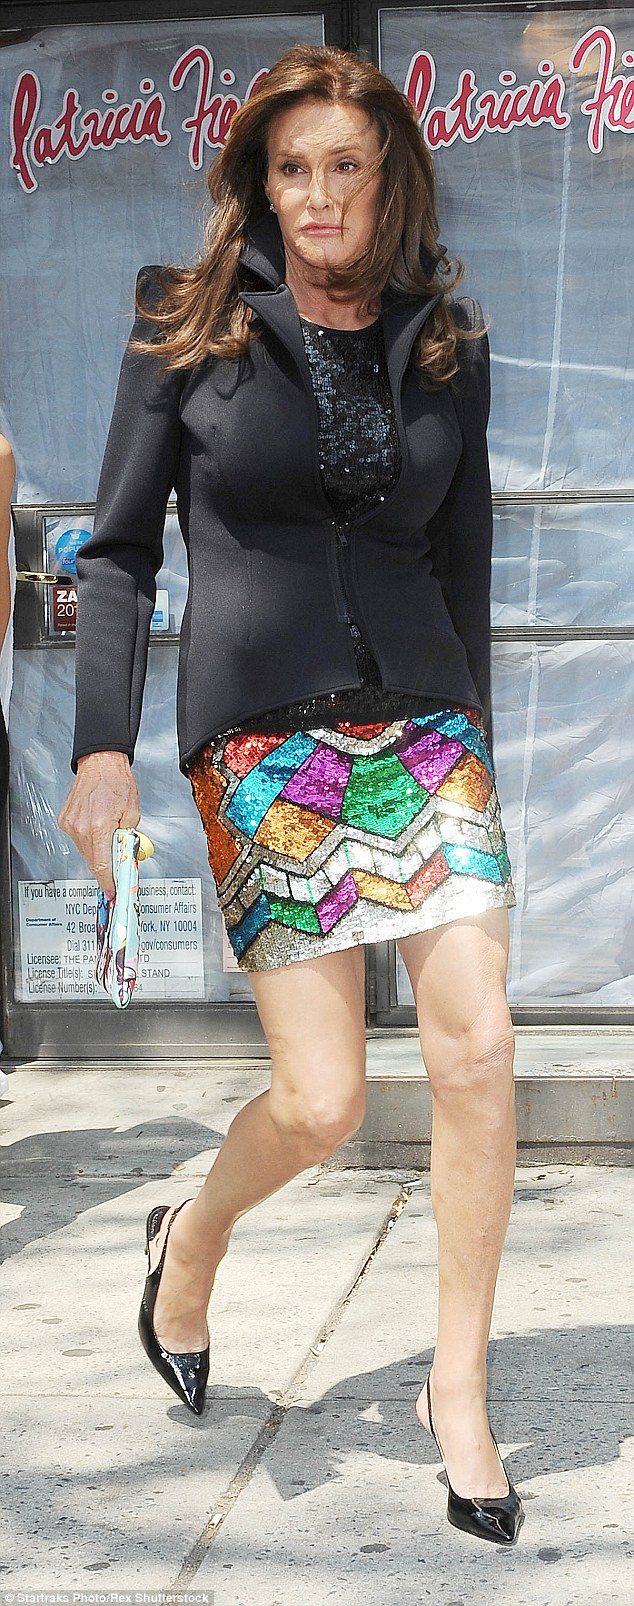 Bright choices: Since transitioning into a woman she has not been afraid to experiment with colour, bold prints or show off her assets - while in NY she went or a short sequined mini which showcased her long legs